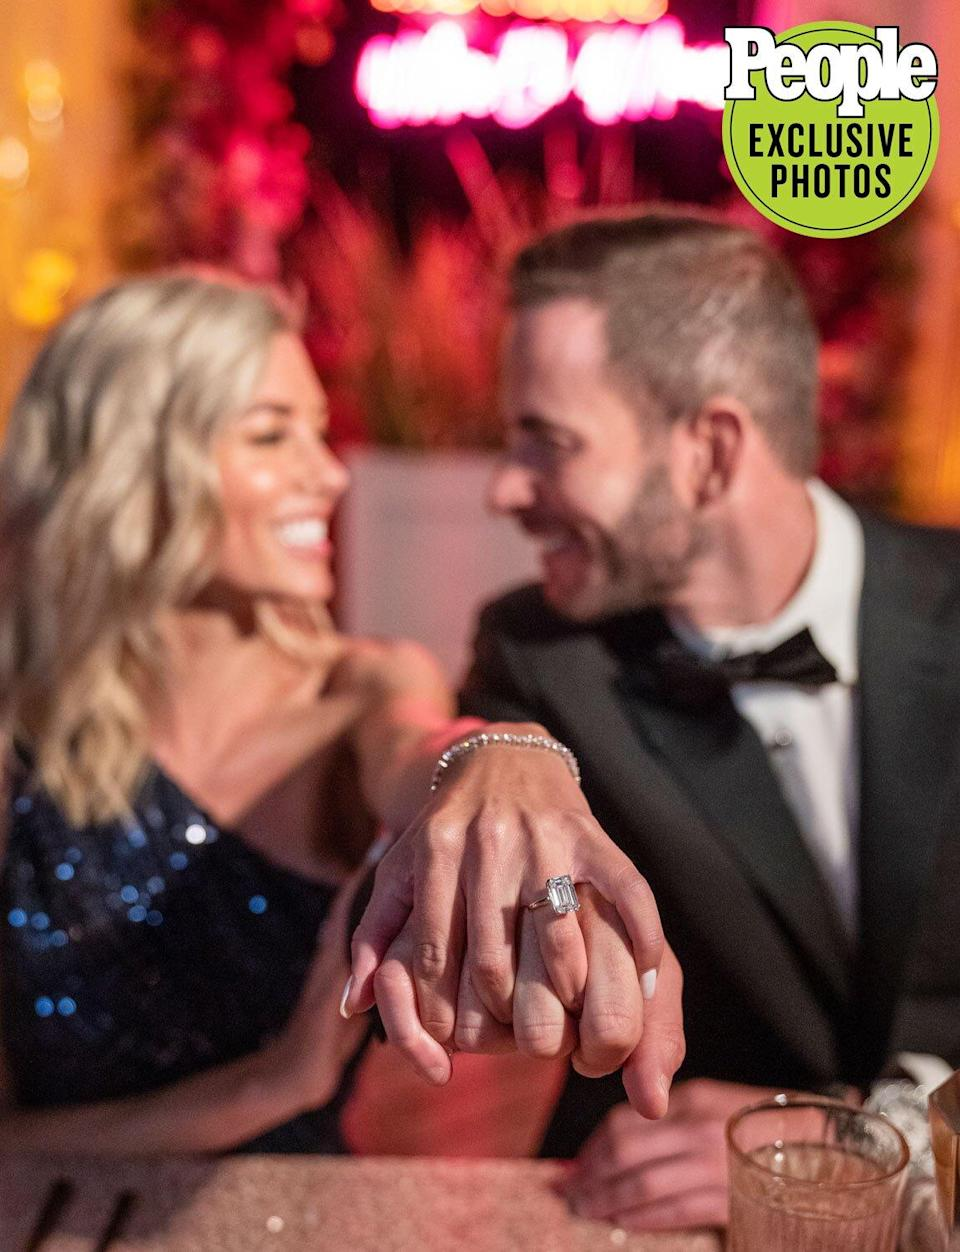 Tarek El Moussa Reveals Wedding Details with Heather Rae Young — and His Feelings About More Kids